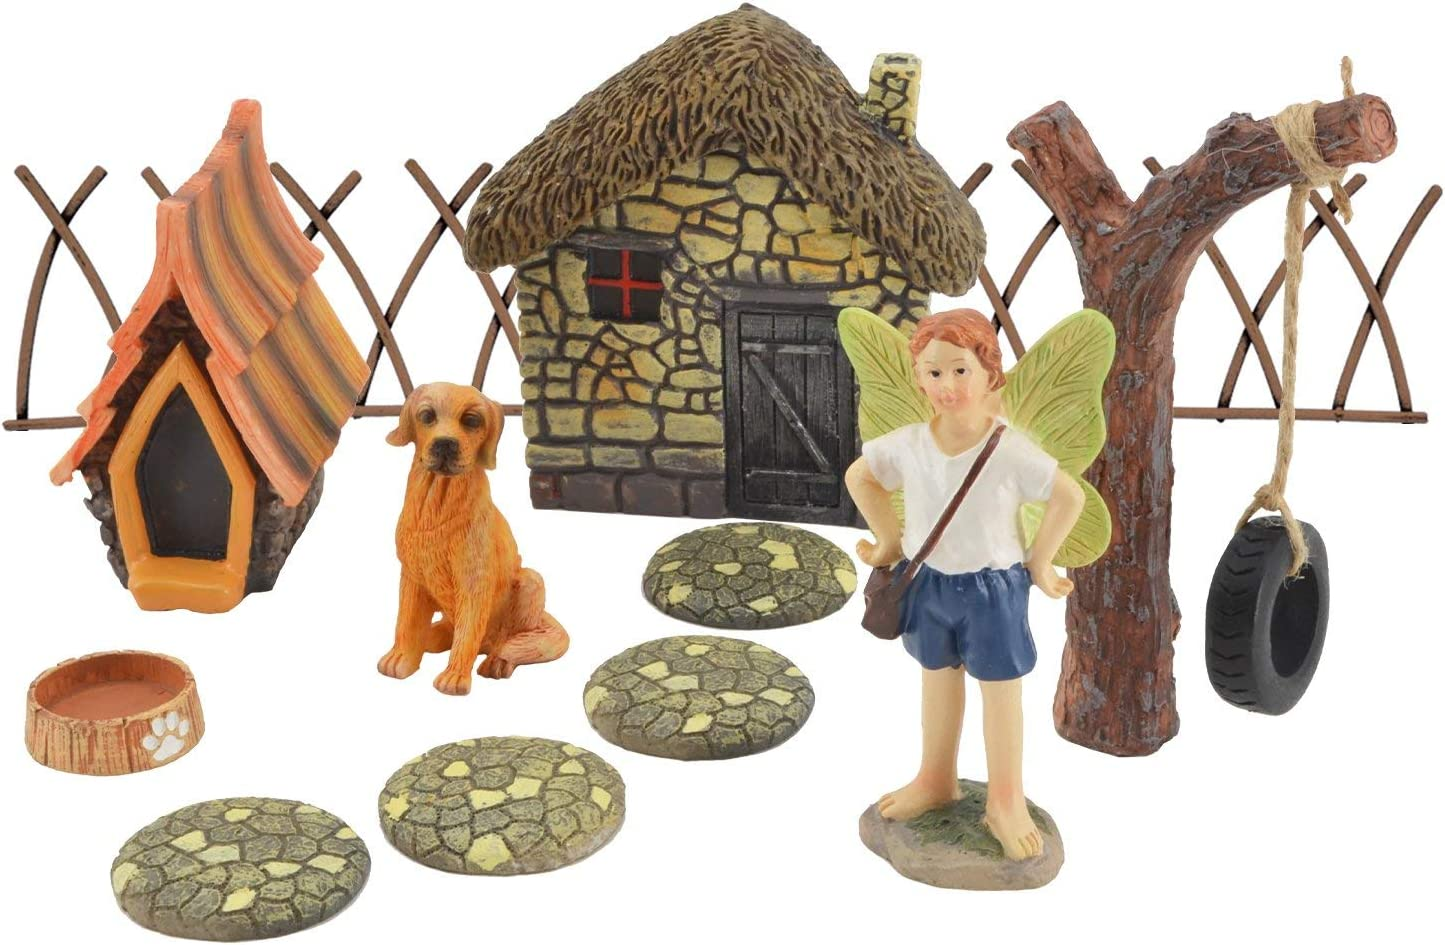 Arcadia Garden Products FG37 Friendly Companion Fairy Garden Kit